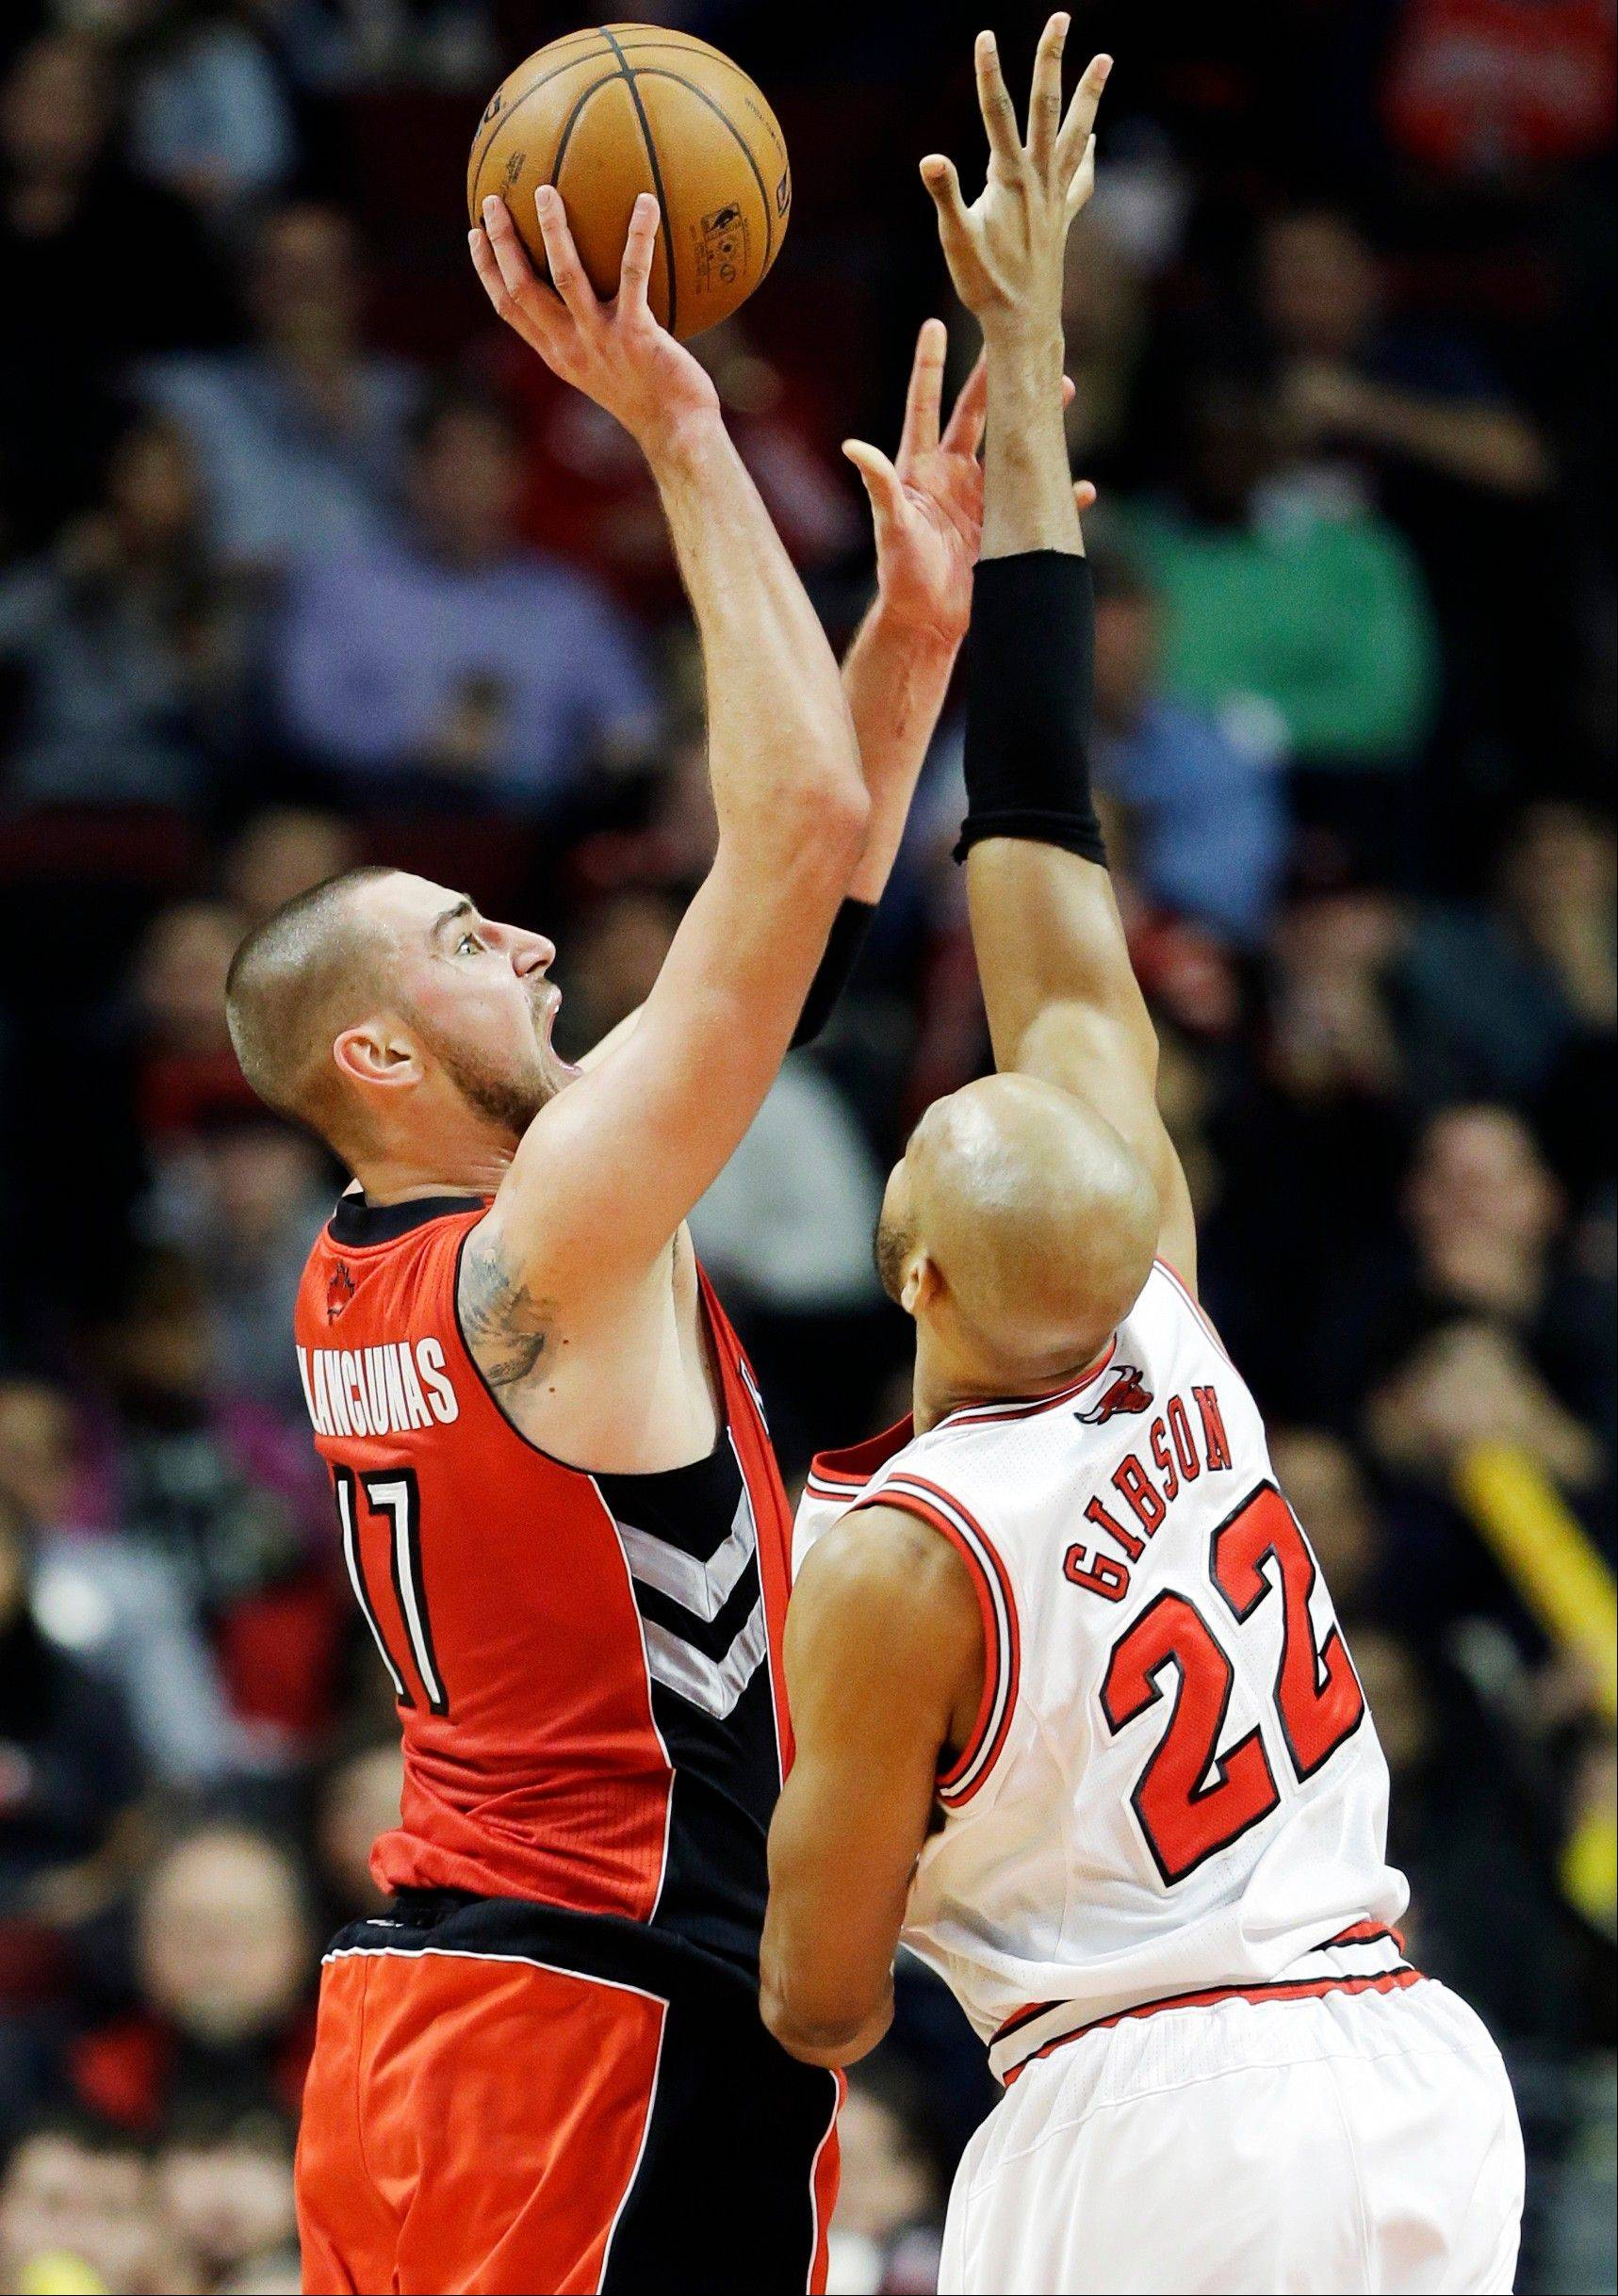 Toronto Raptors center Jonas Valanciunas, left, of Lithuania, shoots over Chicago Bulls forward Taj Gibson during the second half of an NBA basketball game in Chicago on Saturday. The Raptors won 99-77.